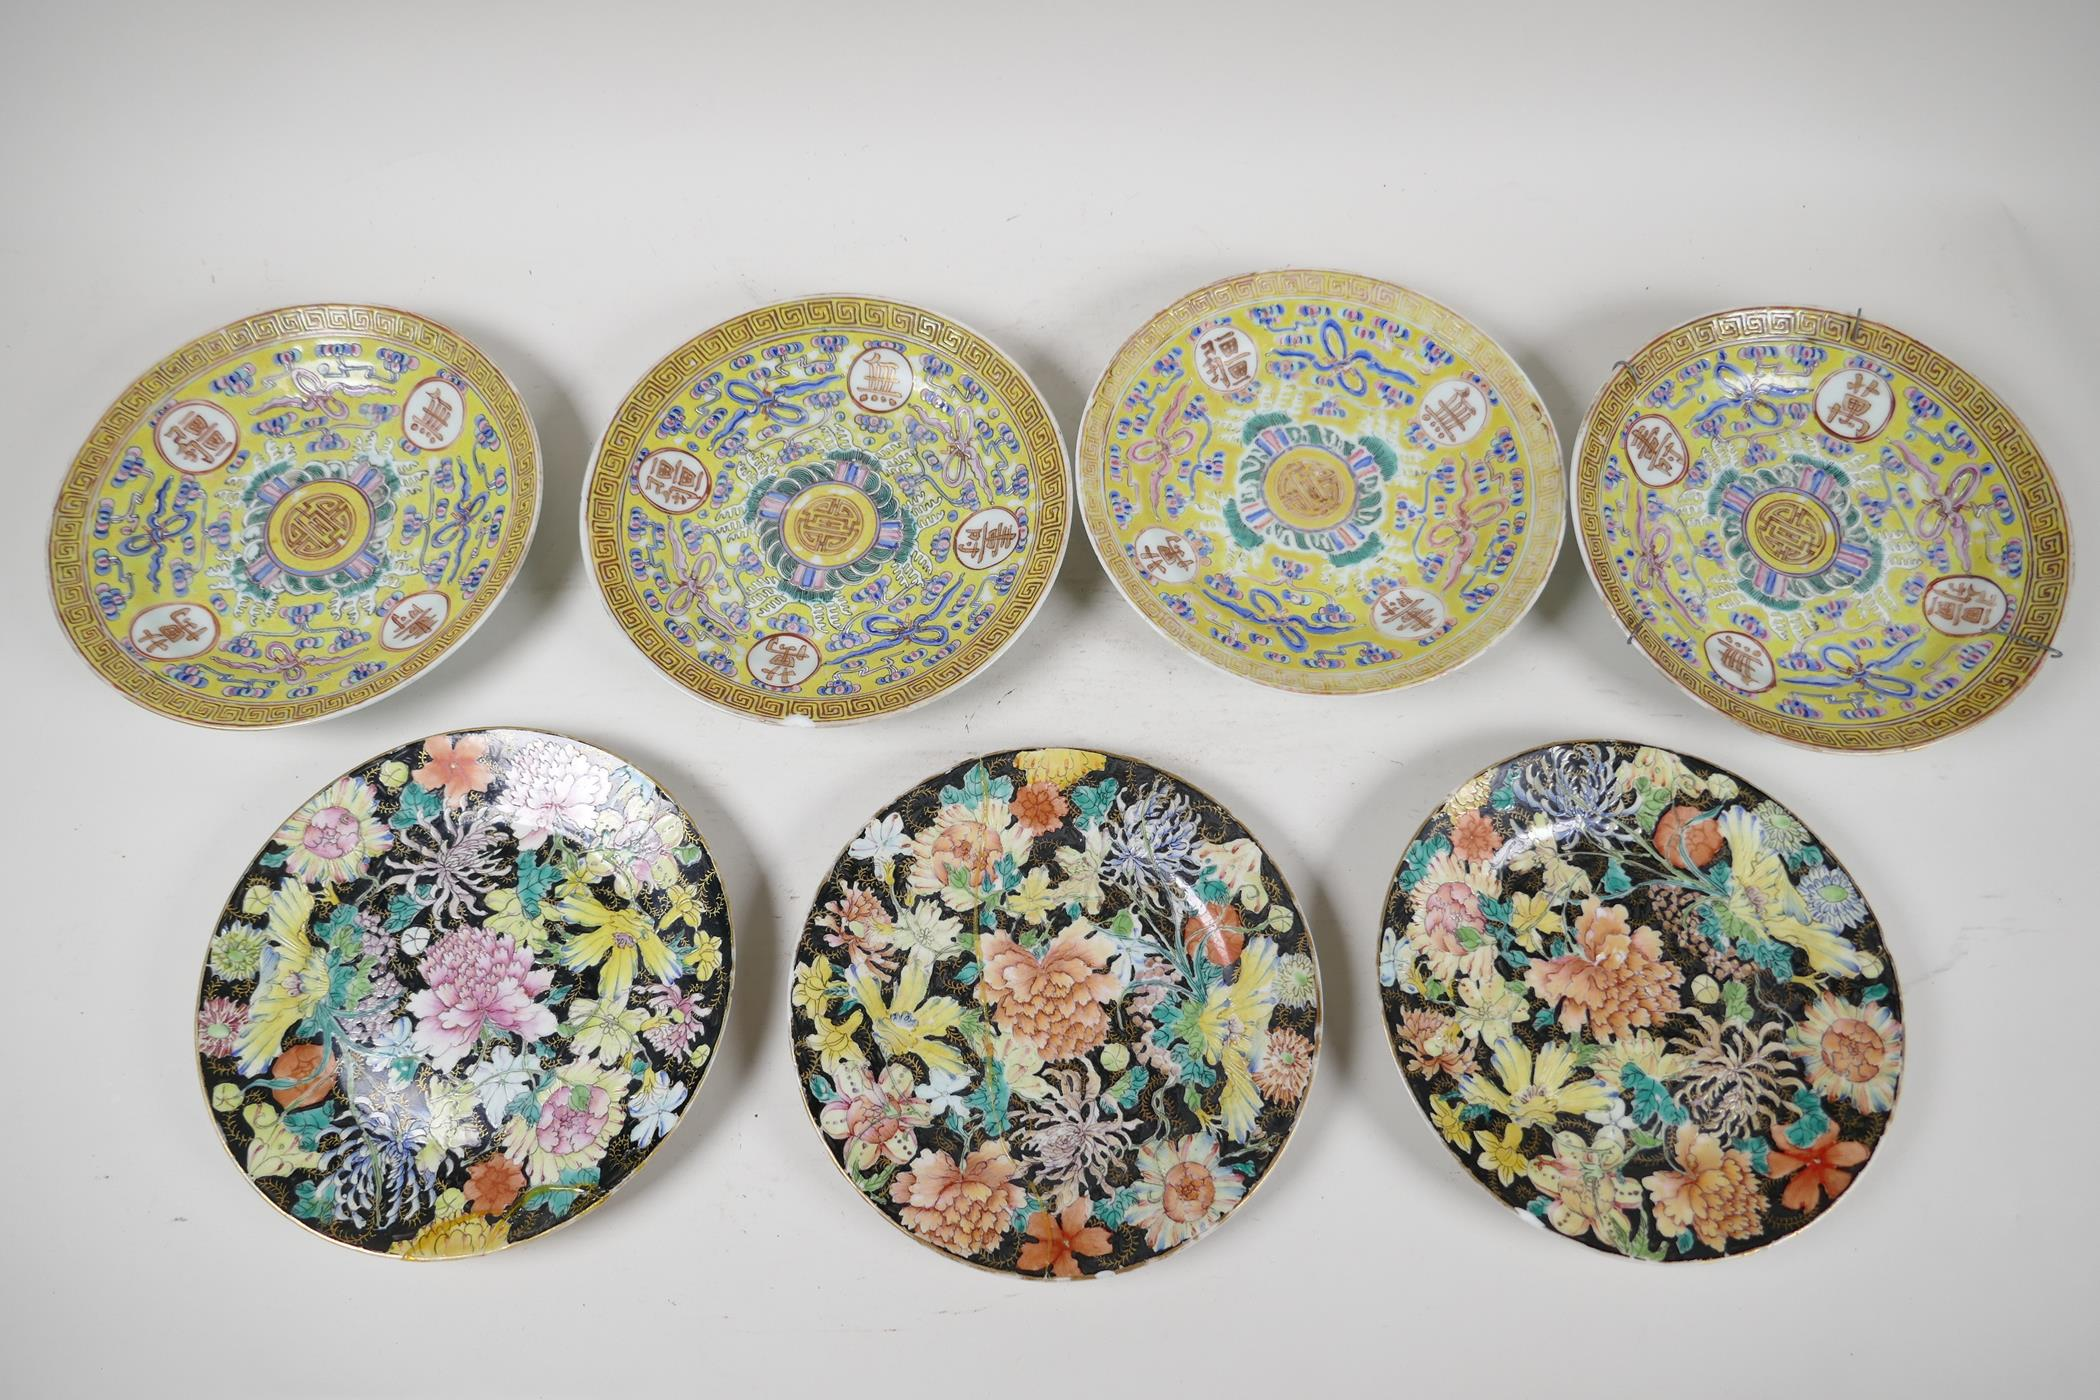 """Four late C19th Chinese porcelain plates decorated with symbols, on a yellow ground, 7"""" diameter,"""